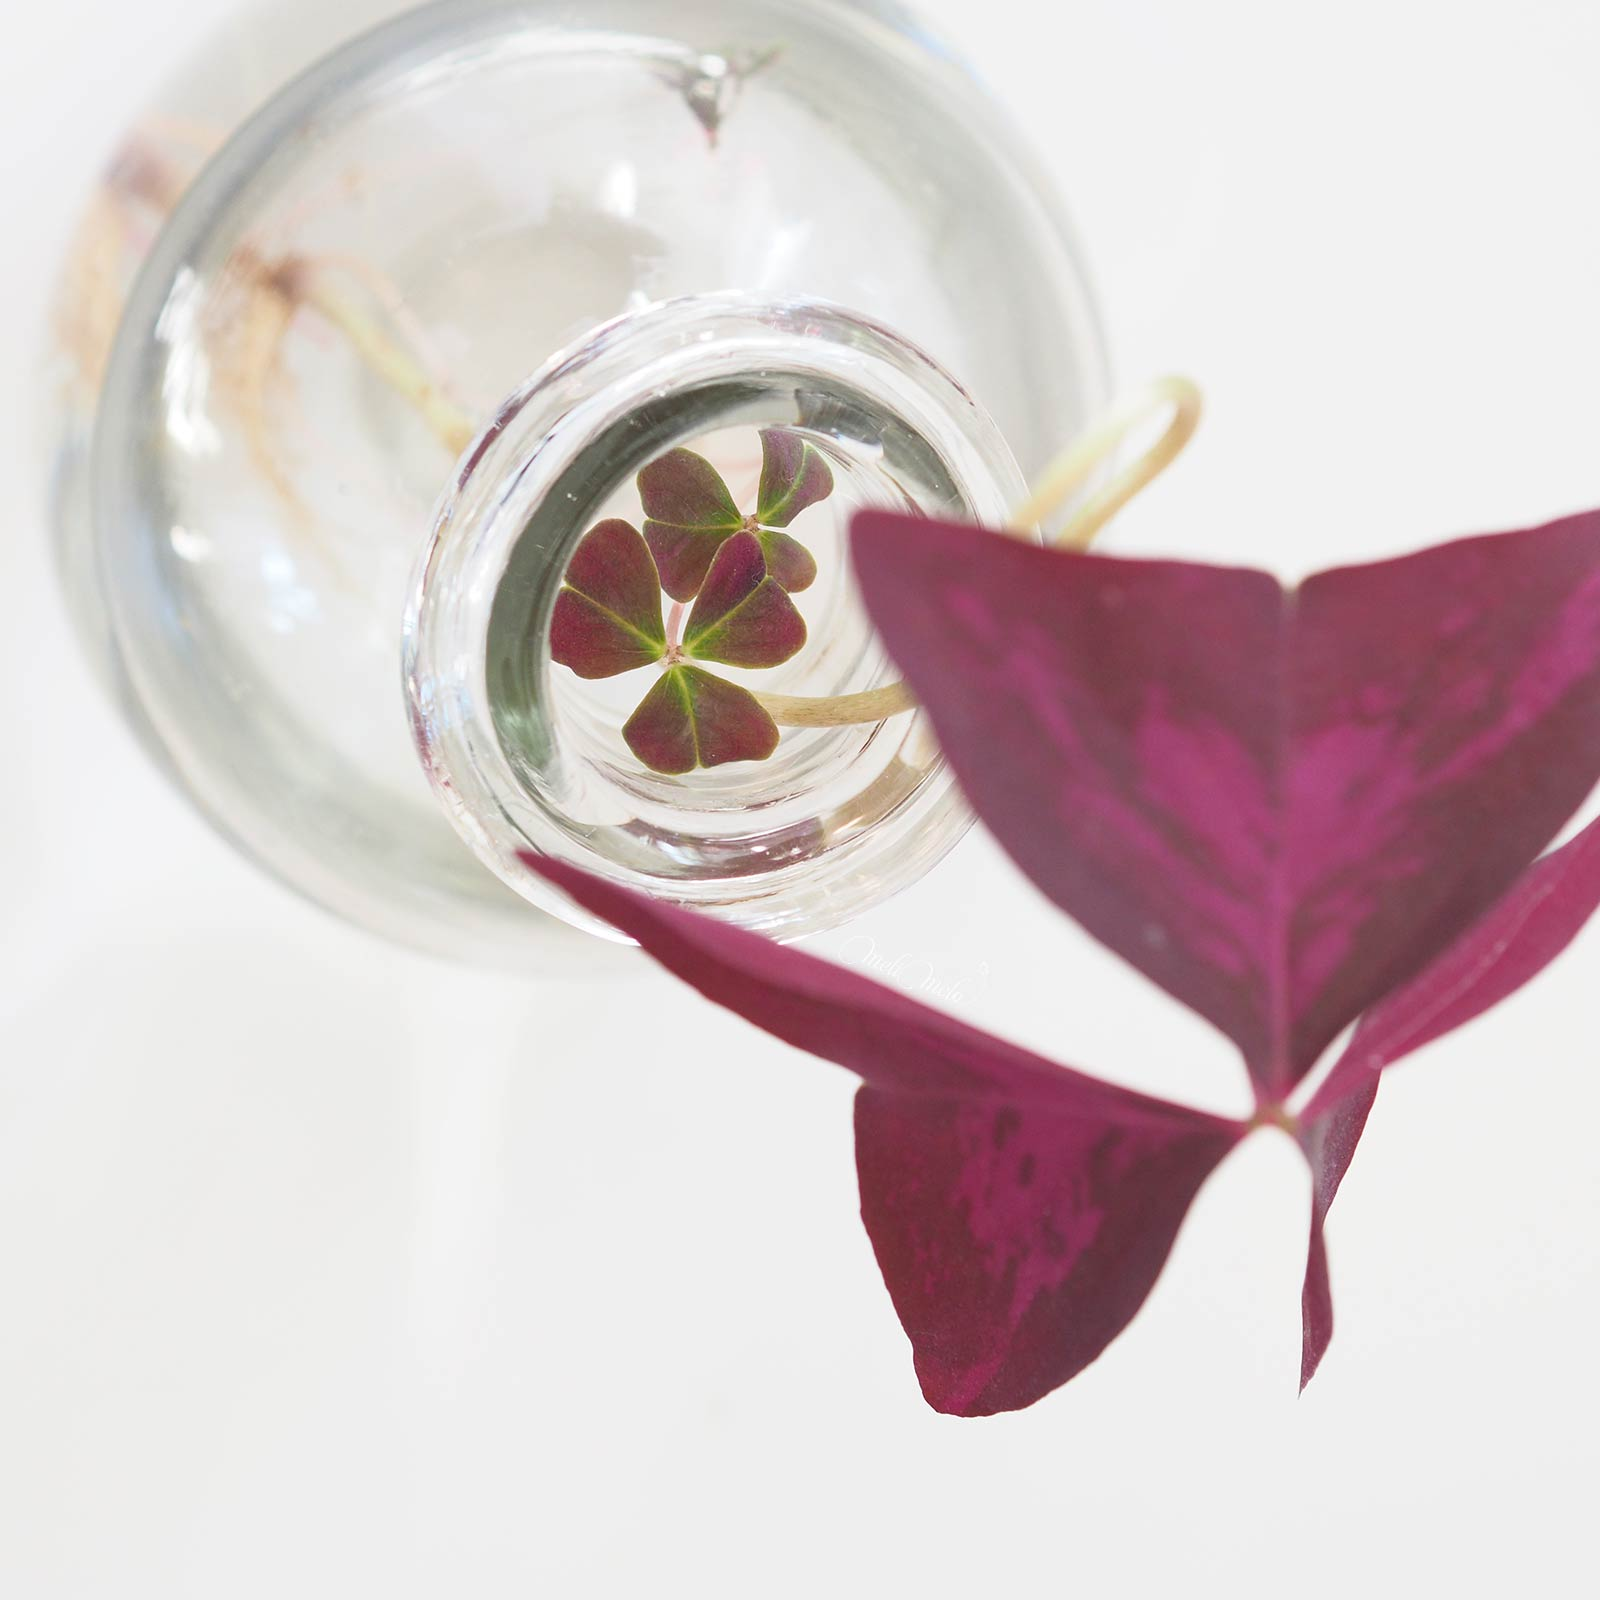 oxalis-triangularis-bouture-hydro-feuilles-6mois-laboutiquedemelimelo